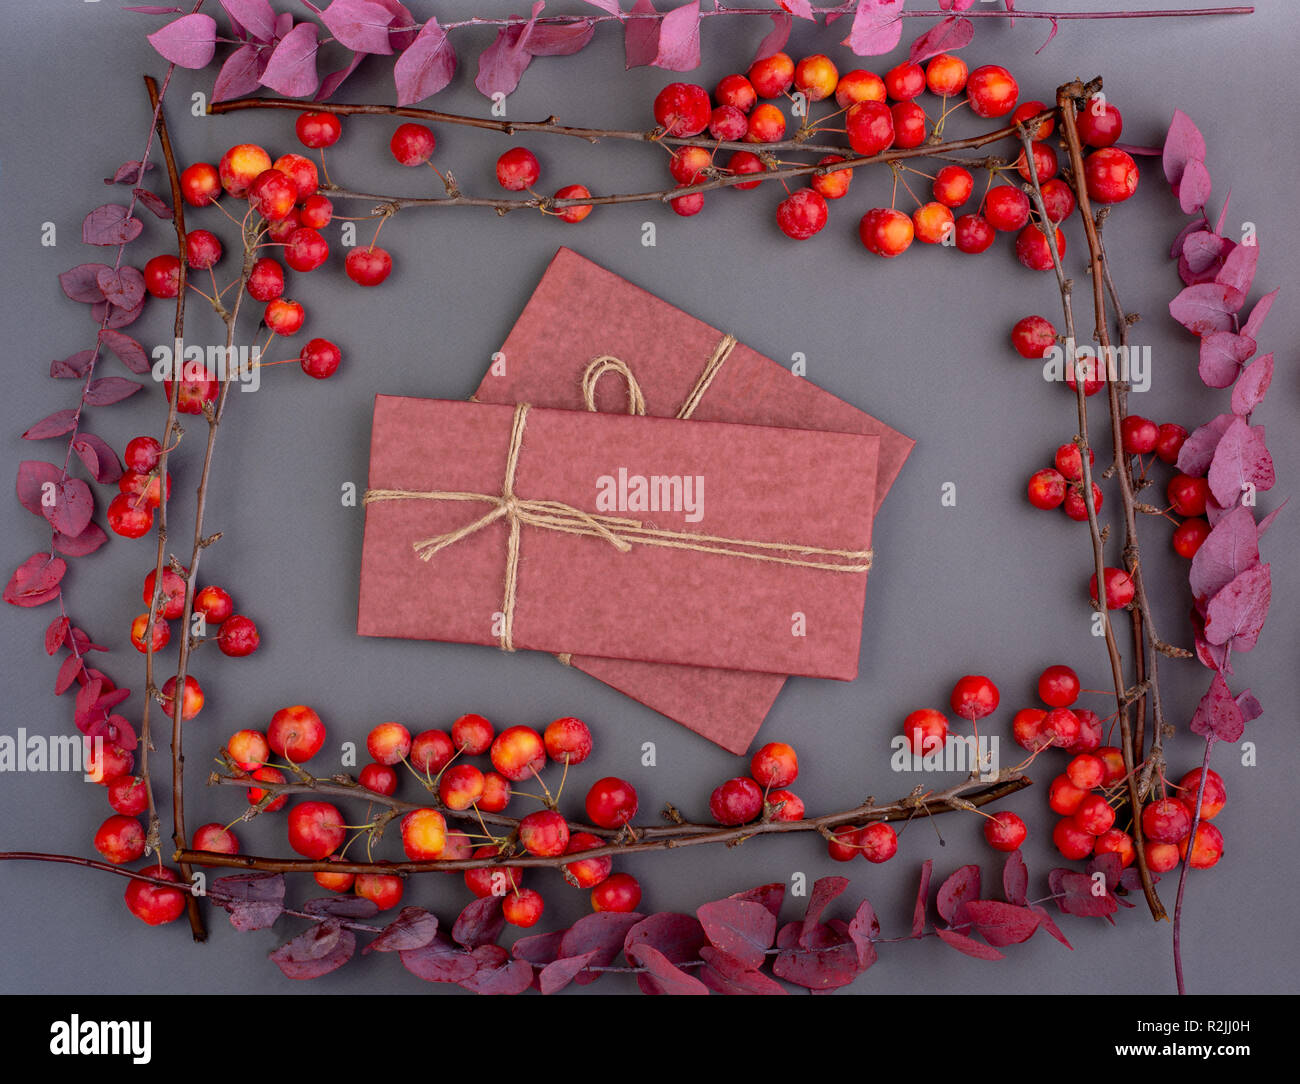 Fall Flatlayof Hand Craft Gift Box With Red Apples And Autumn Leaves